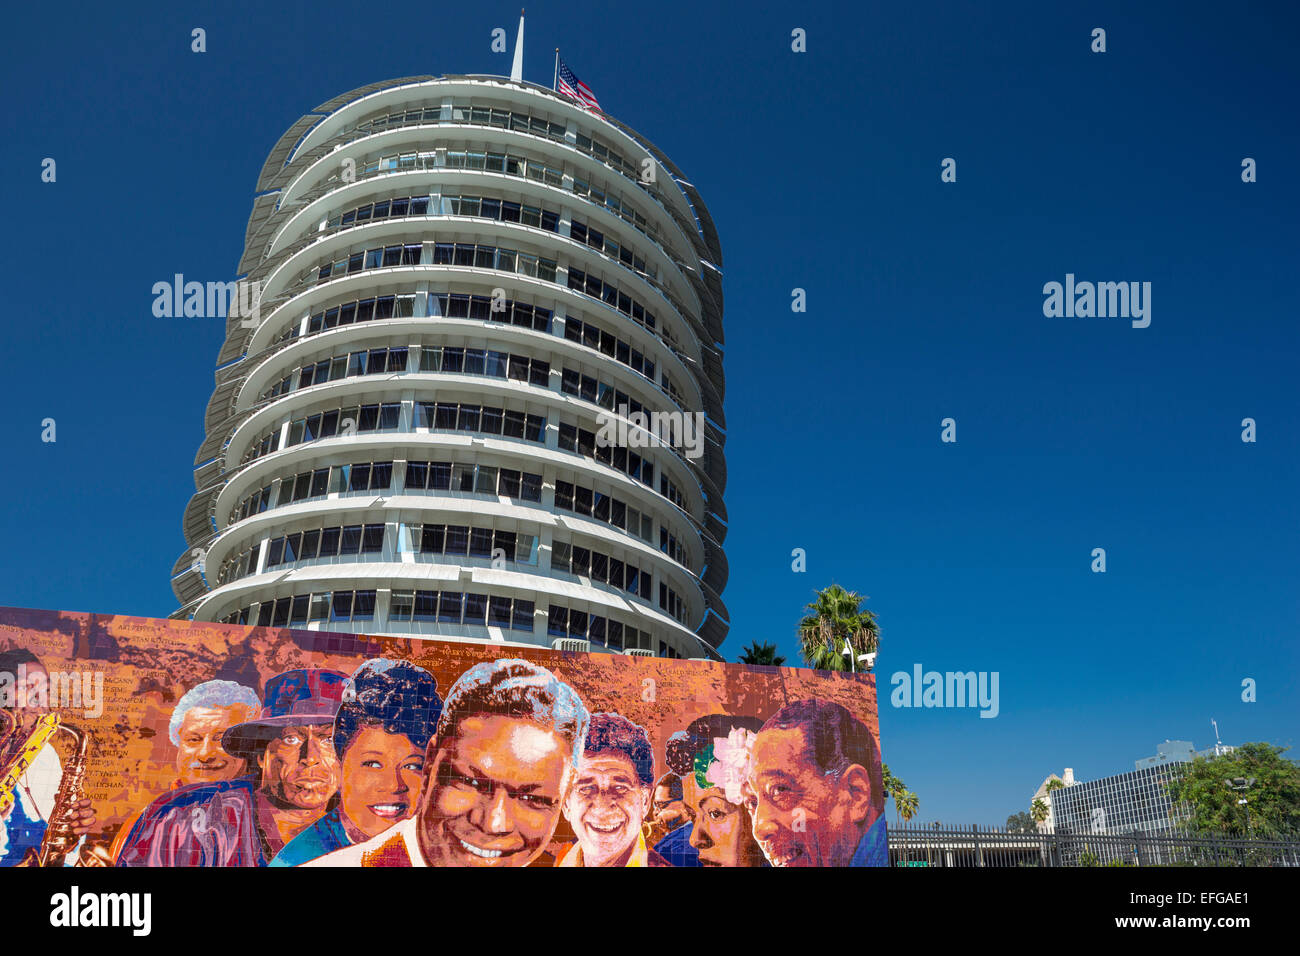 HOLLYWOOD JAZZ MURAL(©RICHARD WYATT 1987) CAPITOL RECORDS BUILDING (©LOUIS NADORF 1956) VINE STREET HOLLYWOOD - Stock Image